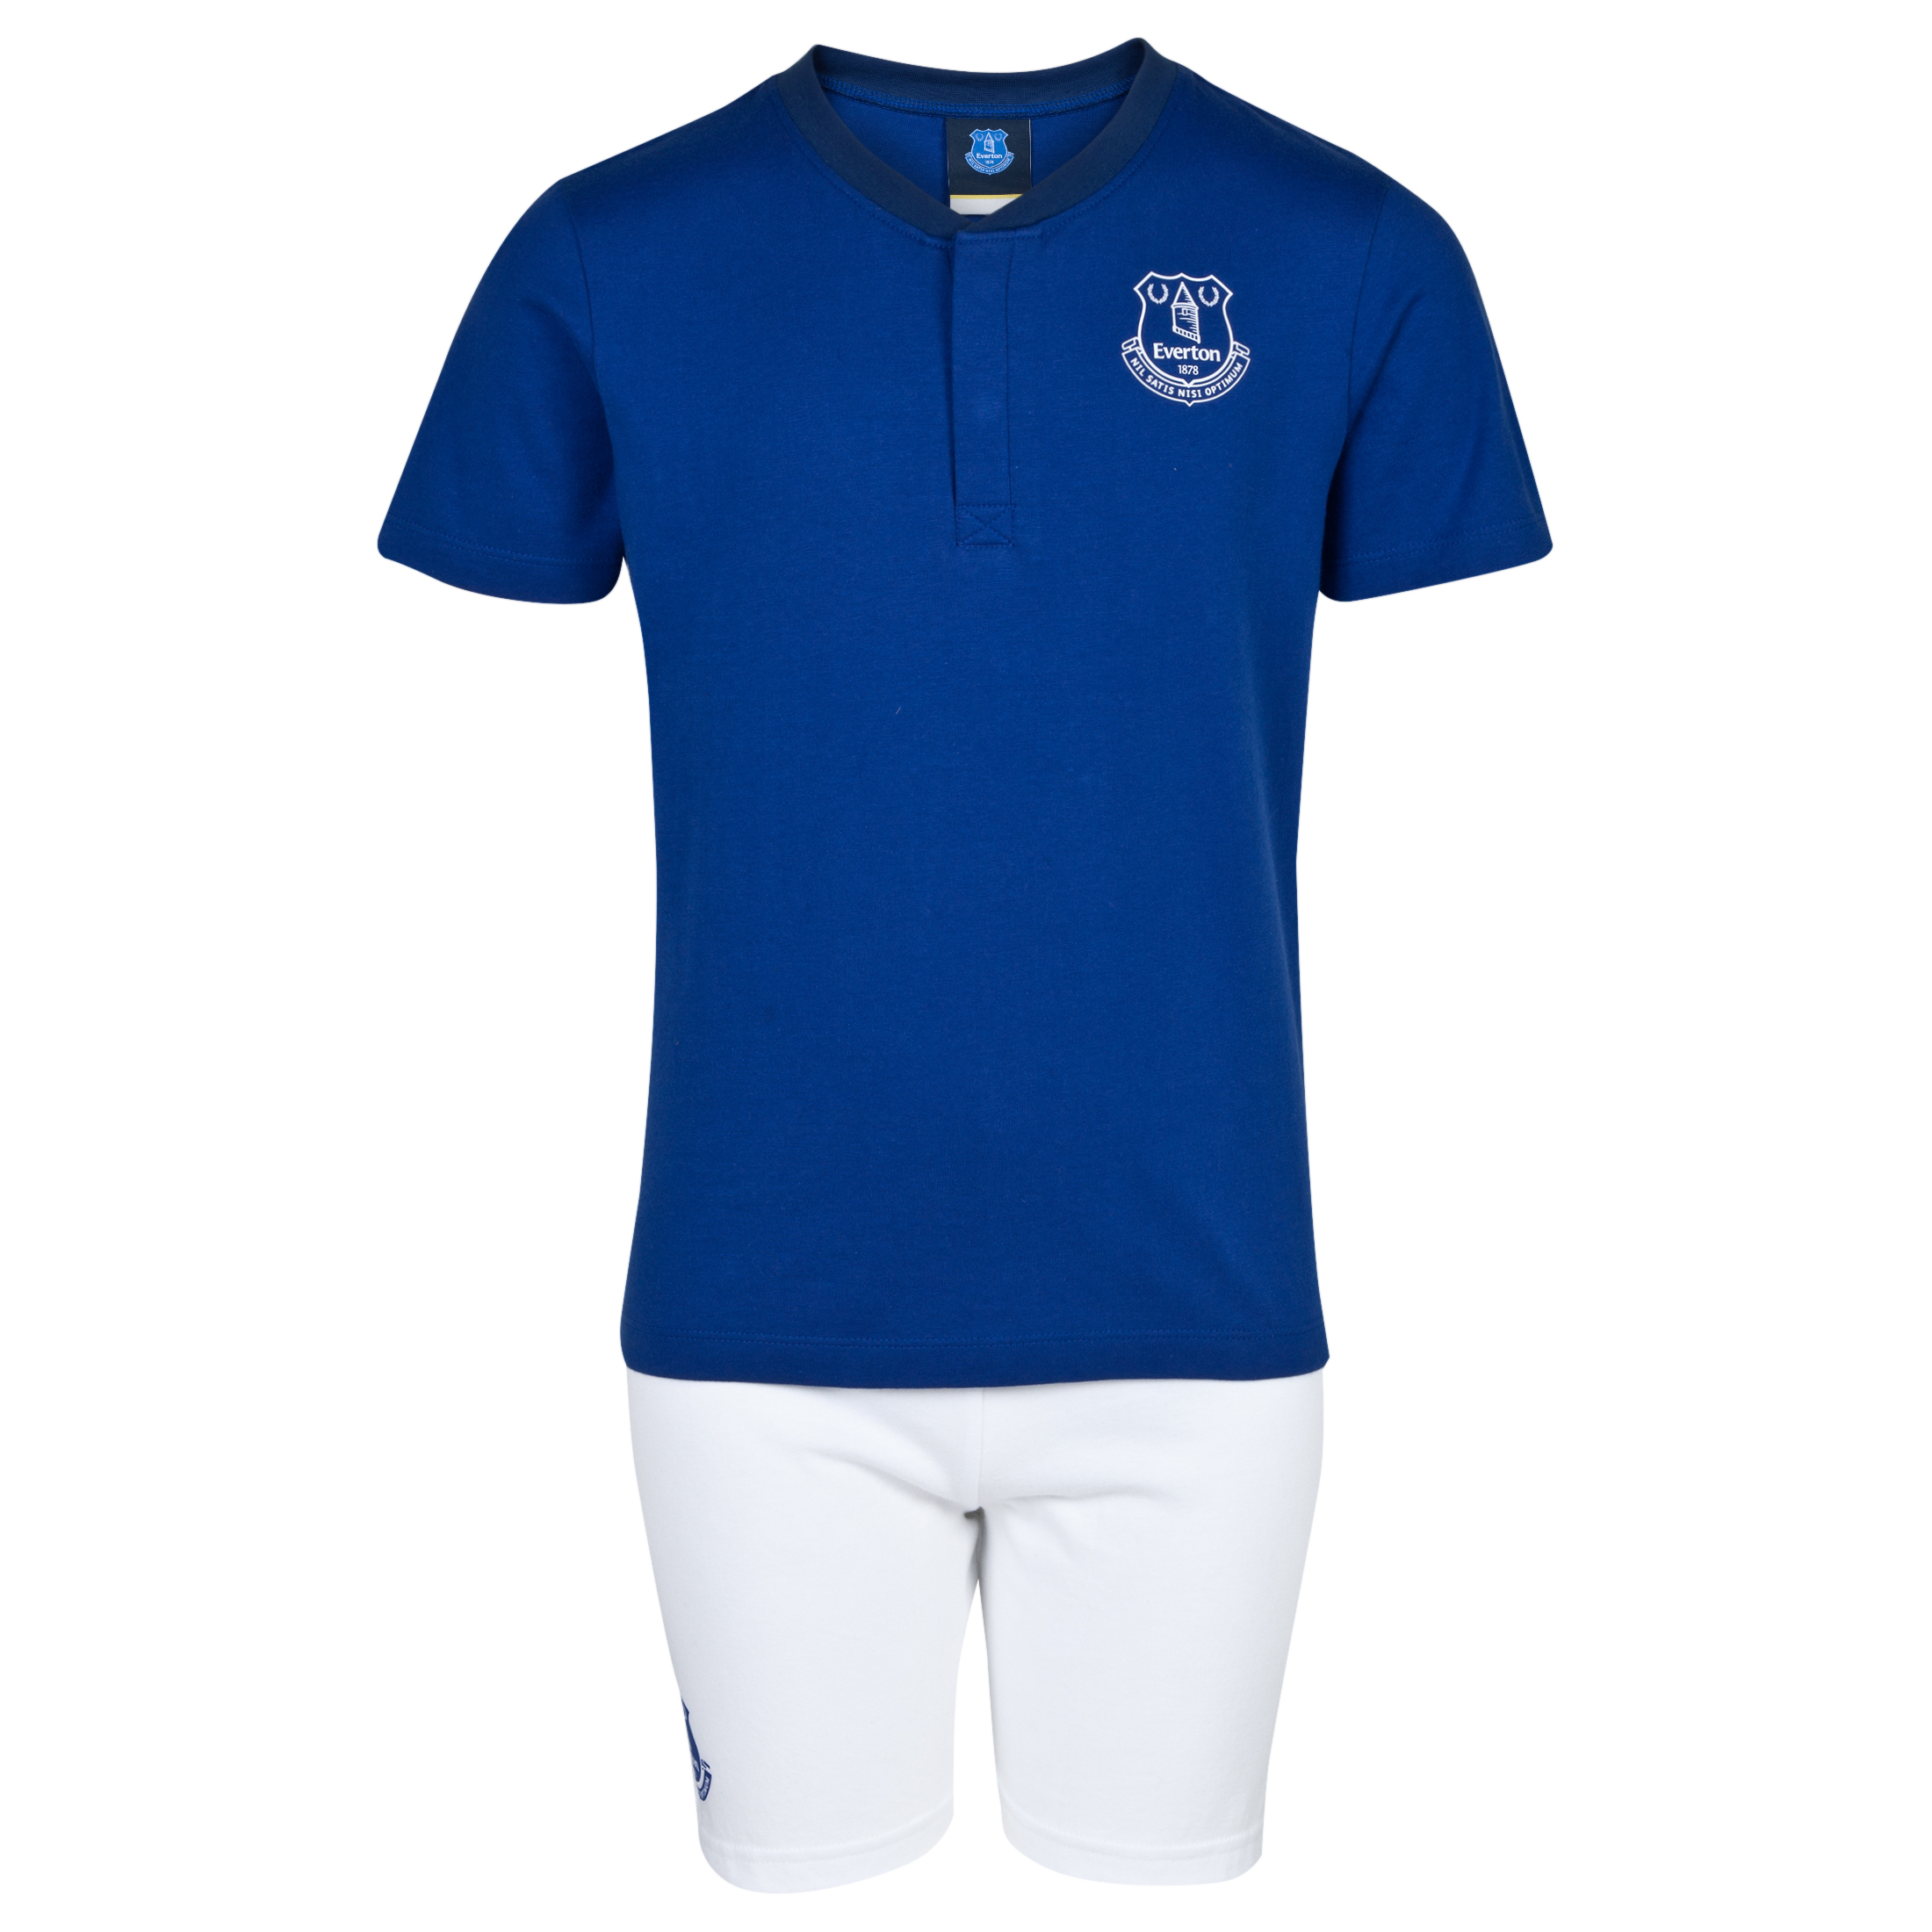 Everton 14/15 Kit Pyjamas- Everton Blue/White - Boys